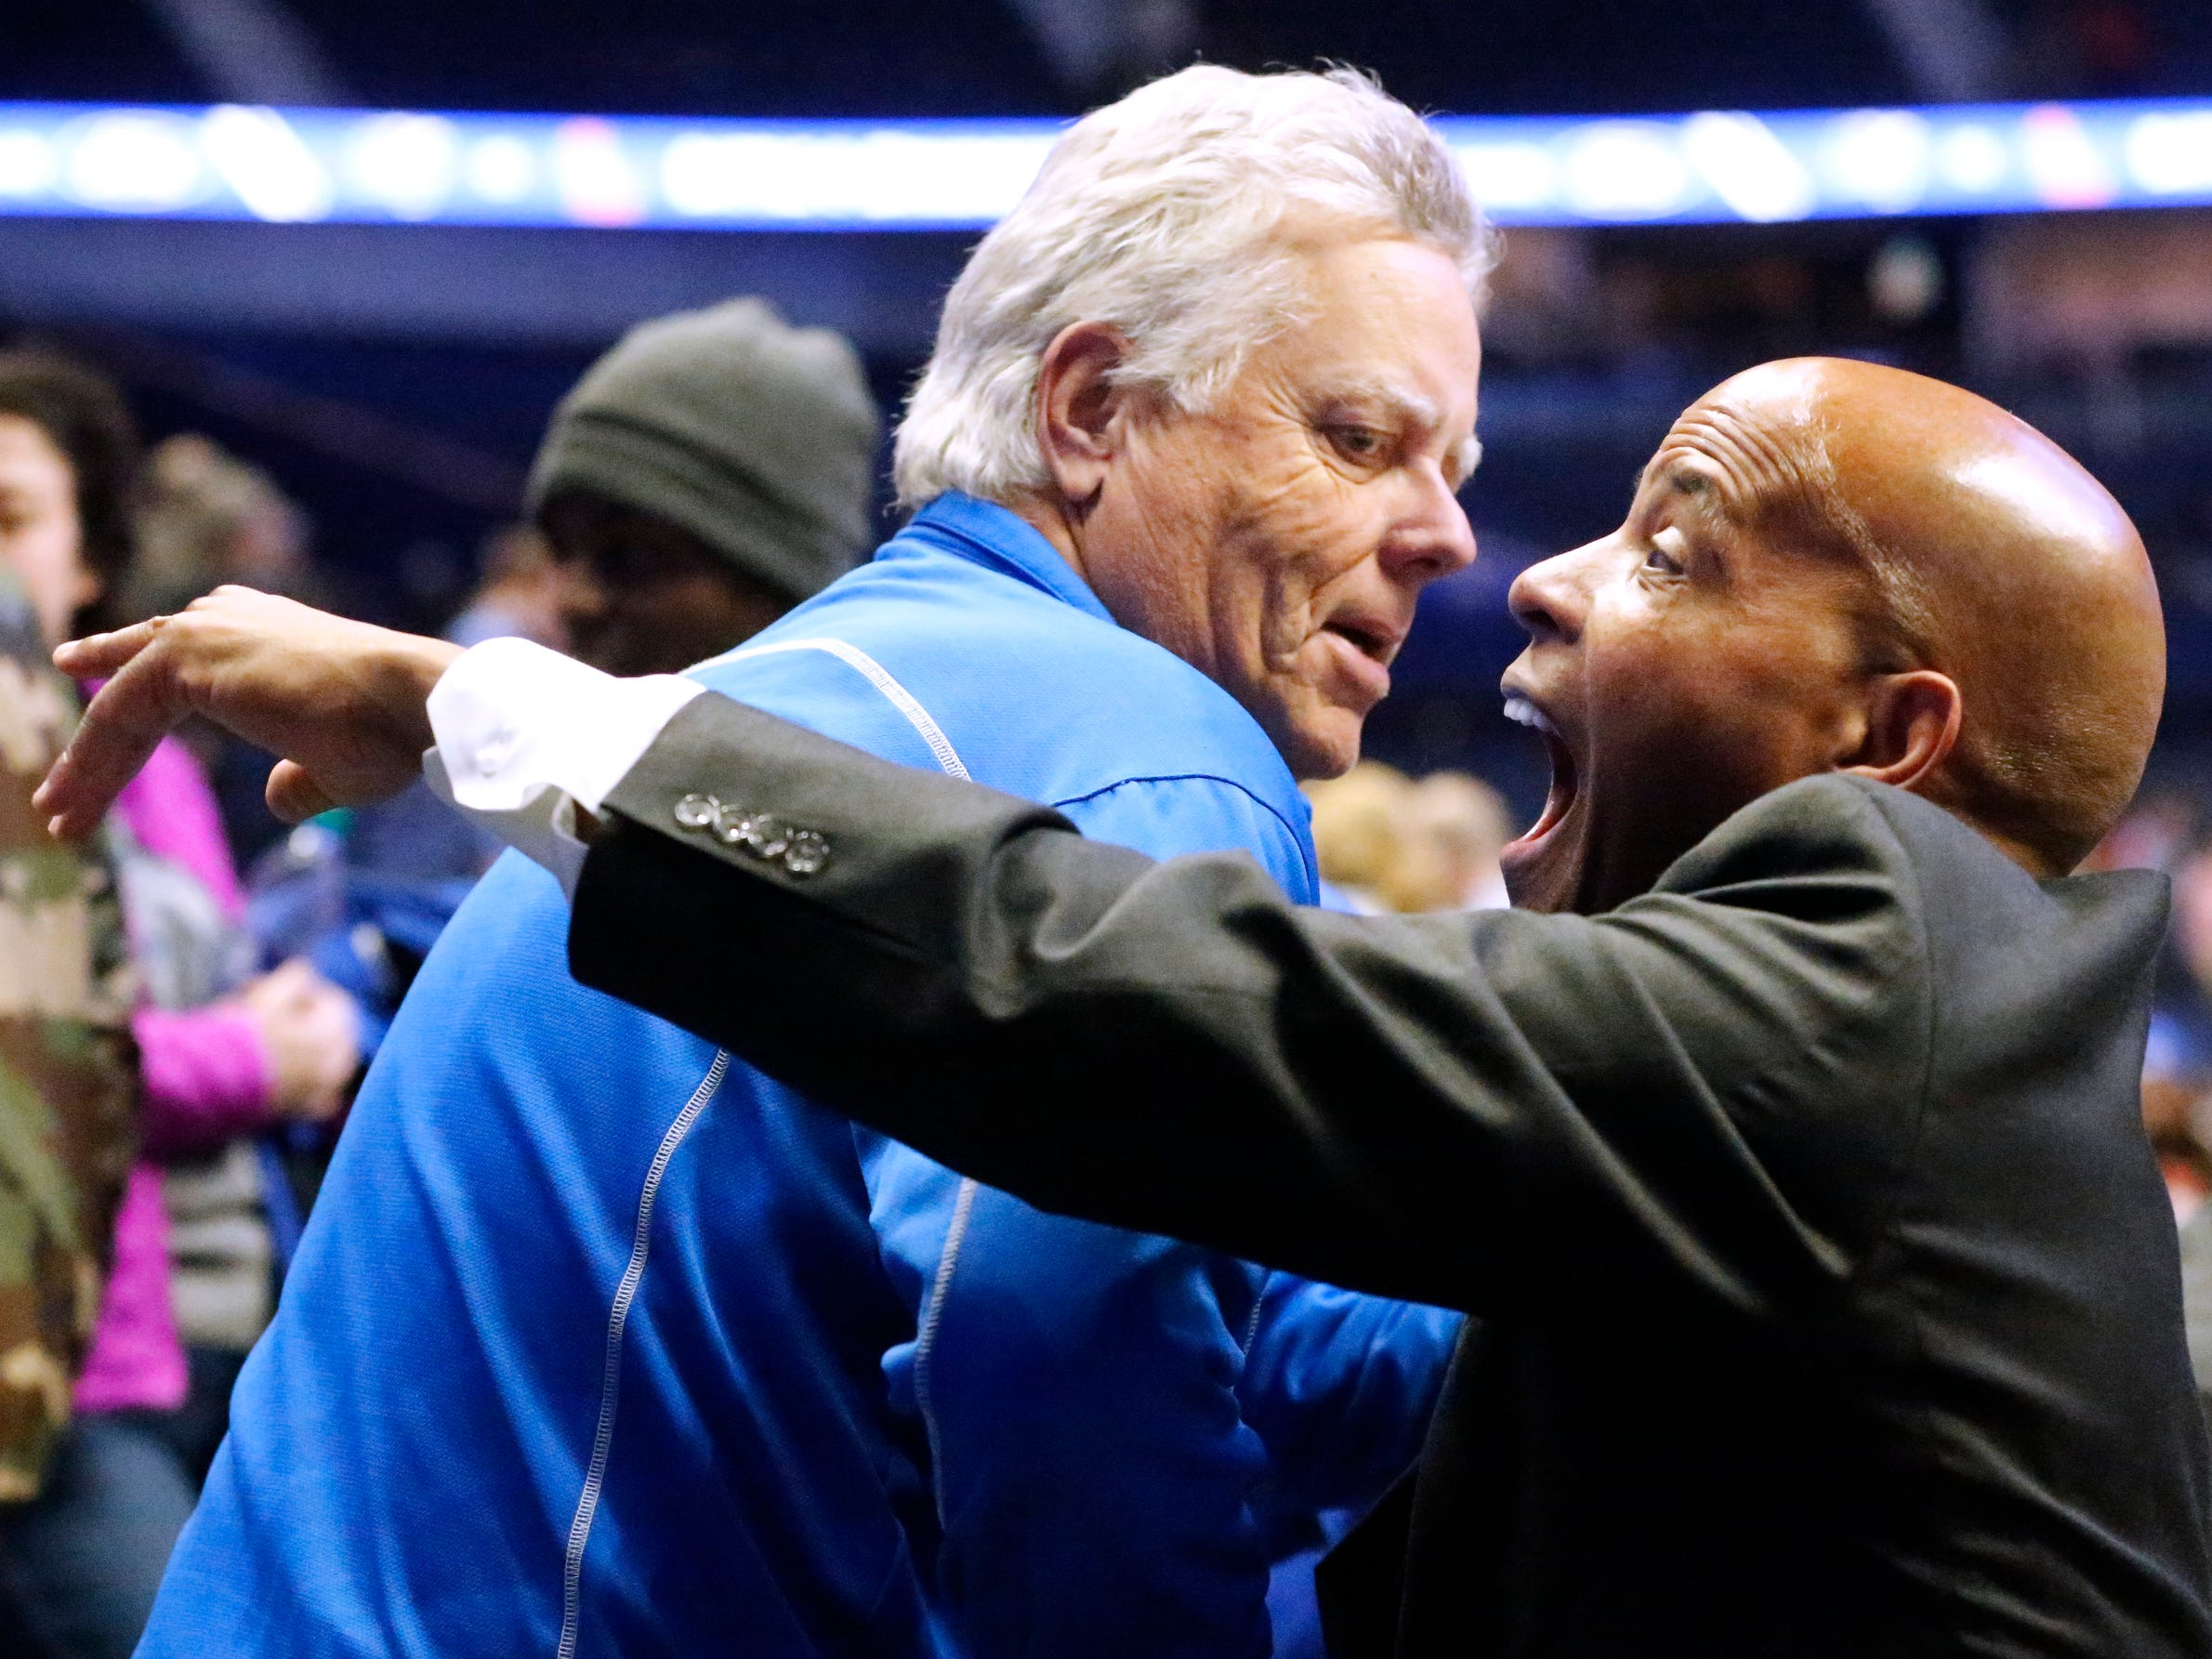 Ole Miss assistant coach Win Case and former MTSU assistant coach meets with the MTSU fans after the game between the two schools, on Friday Dec. 21, 2018, at Bridgestone Arena.